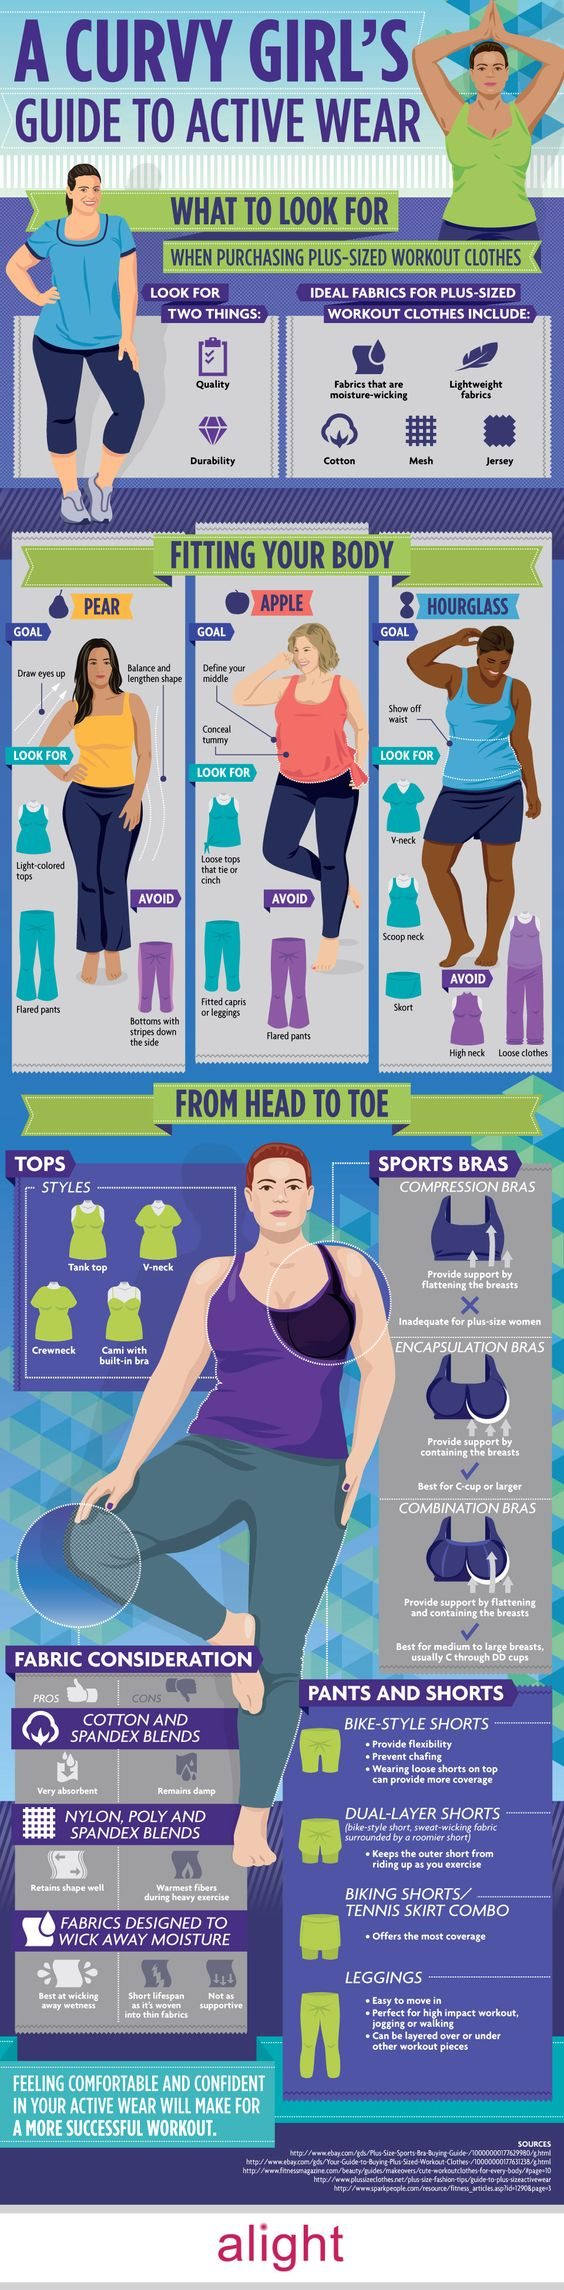 {Fashion Friday} A Curvy Girl's Guide to Active Wear | The Pretty Pear Bride - Plus Size Bridal Magazine